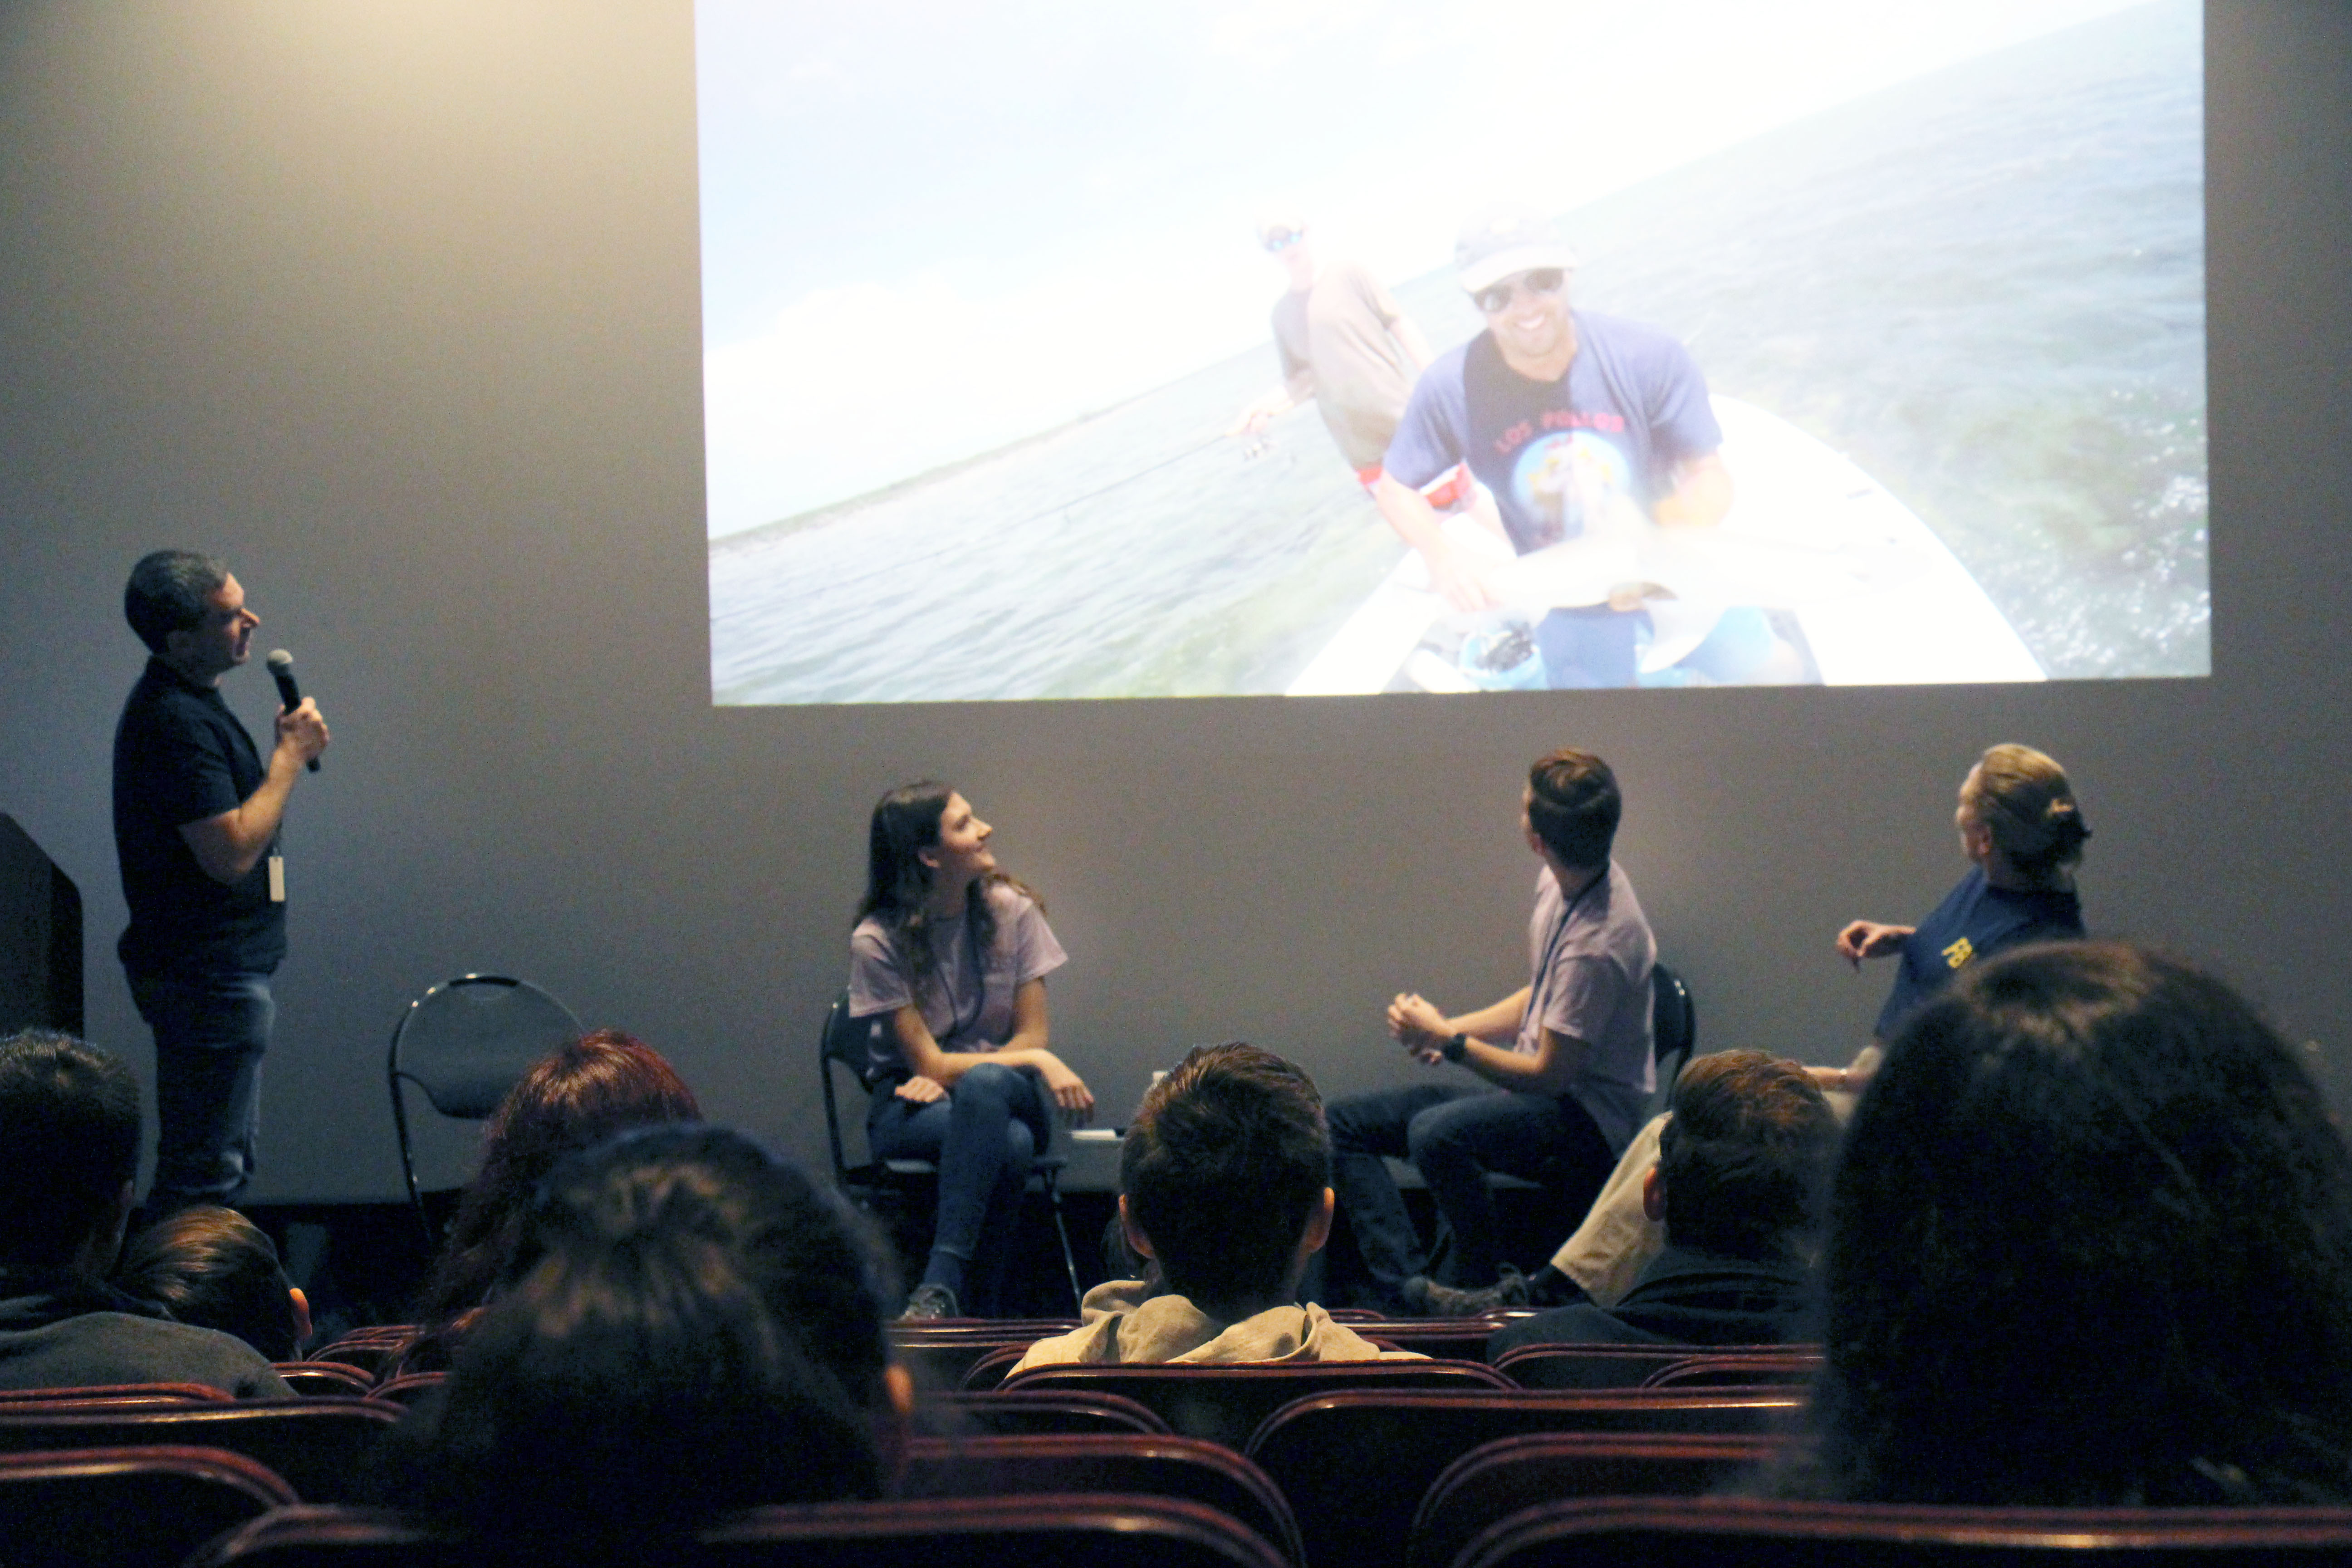 The curioCITY panel—two teens and two adults—sit and stand on stage. All look behind them to view a footage of two adults in a boat.